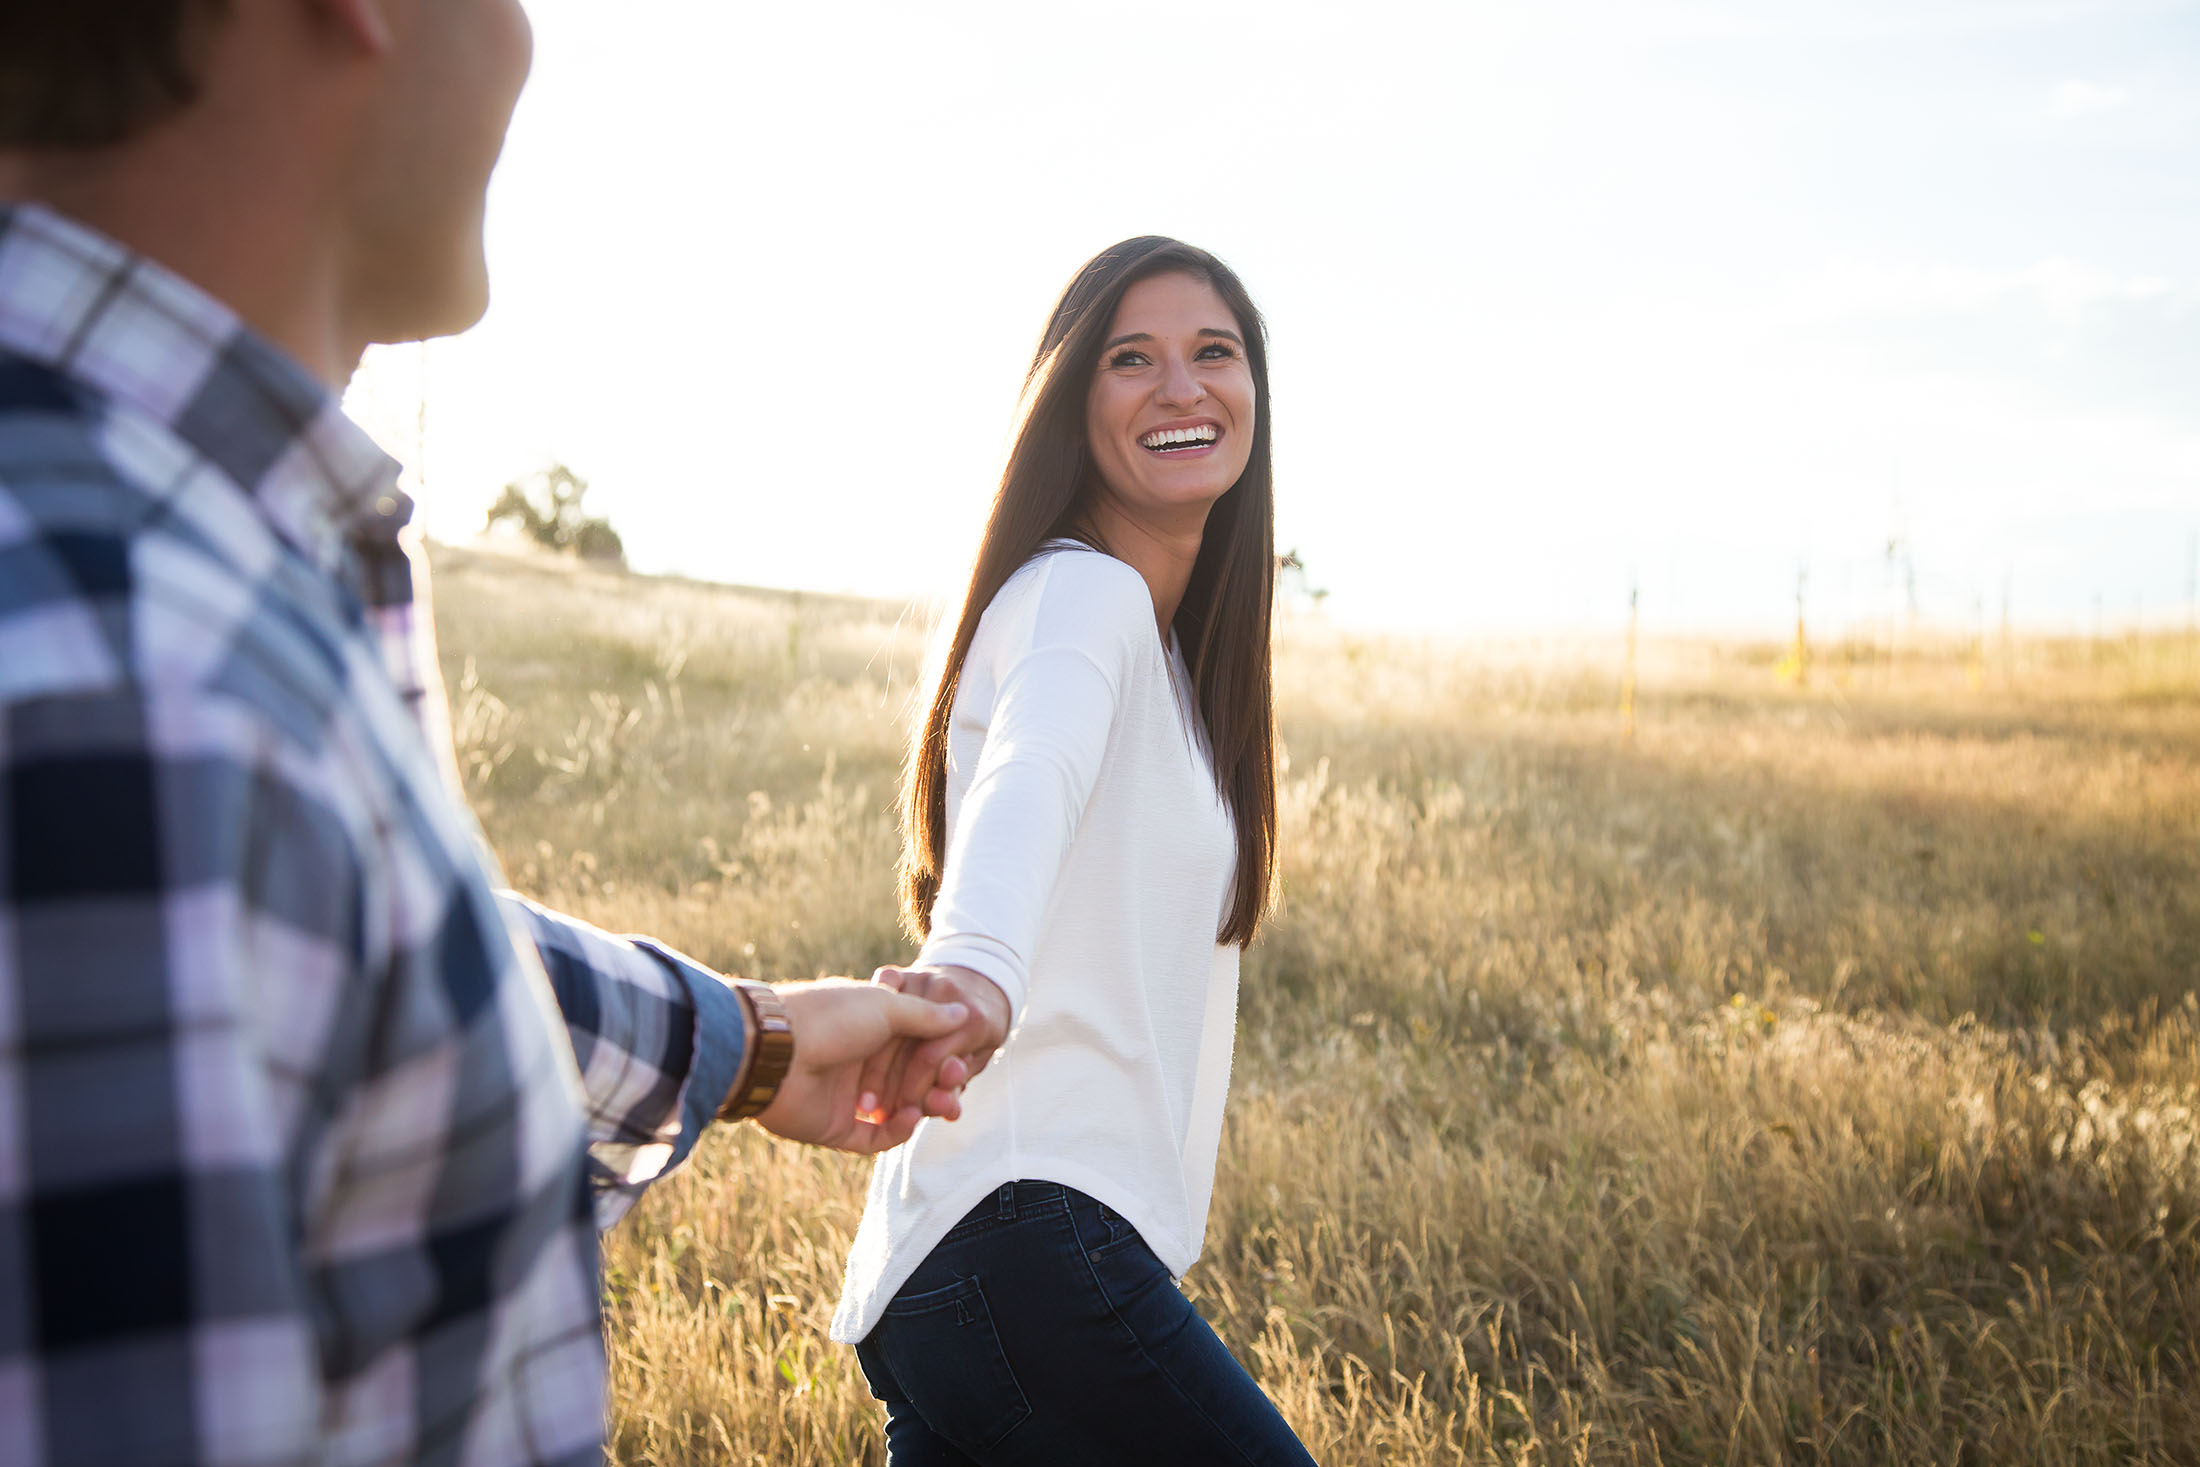 Woman walks through a sunlit field and looks back at her partner.